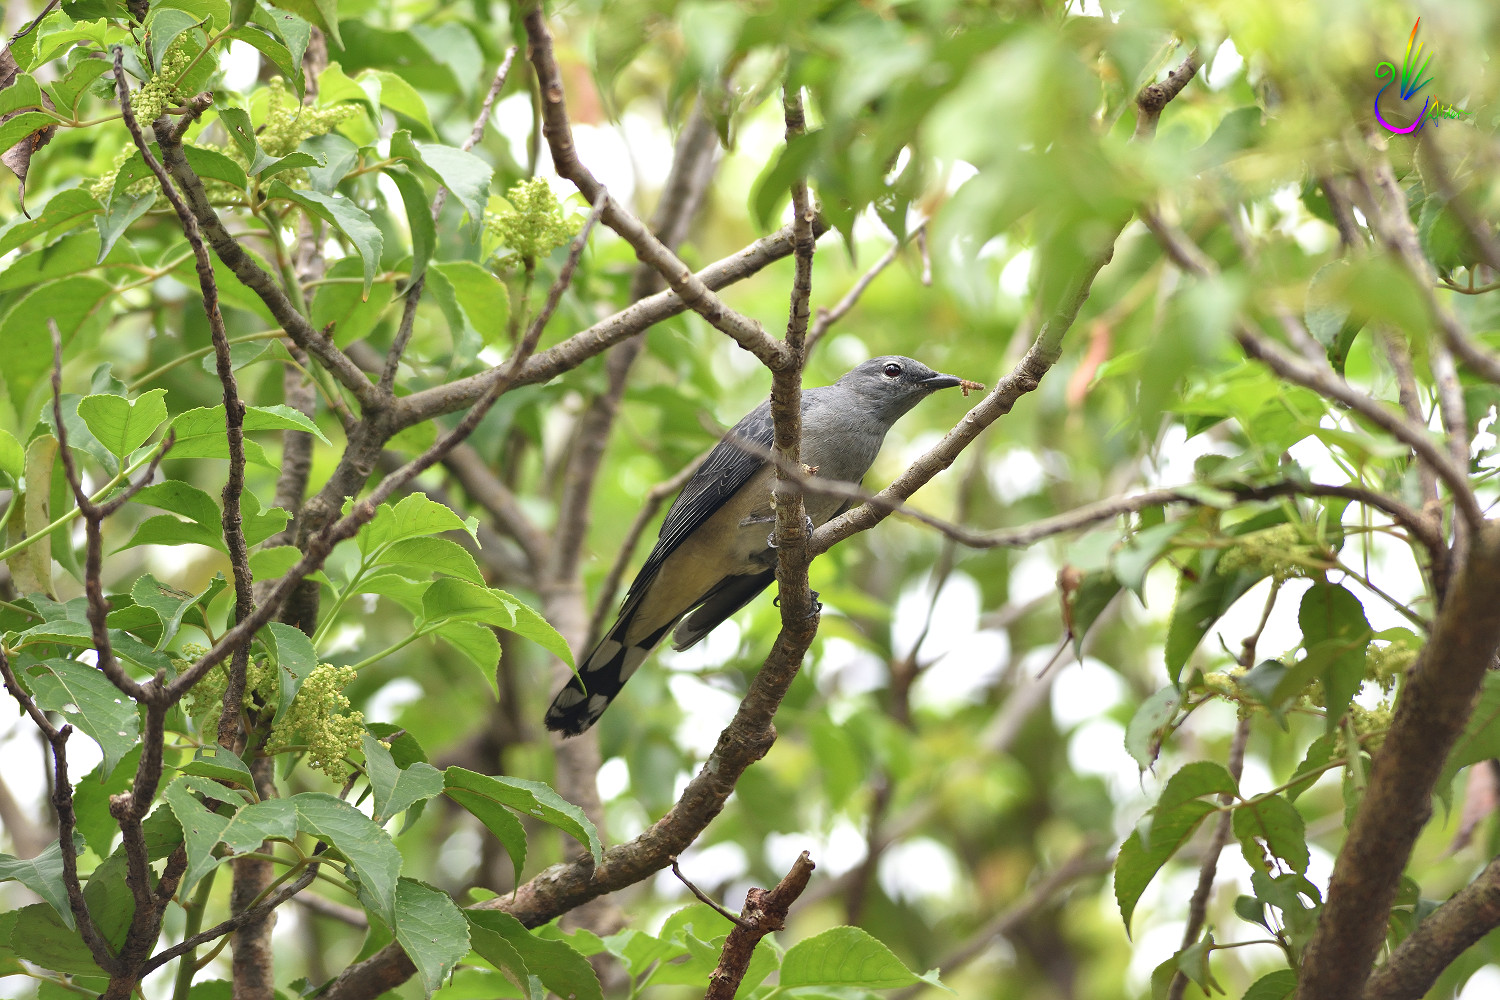 Black-winged_Cuckoo-shrike_8866